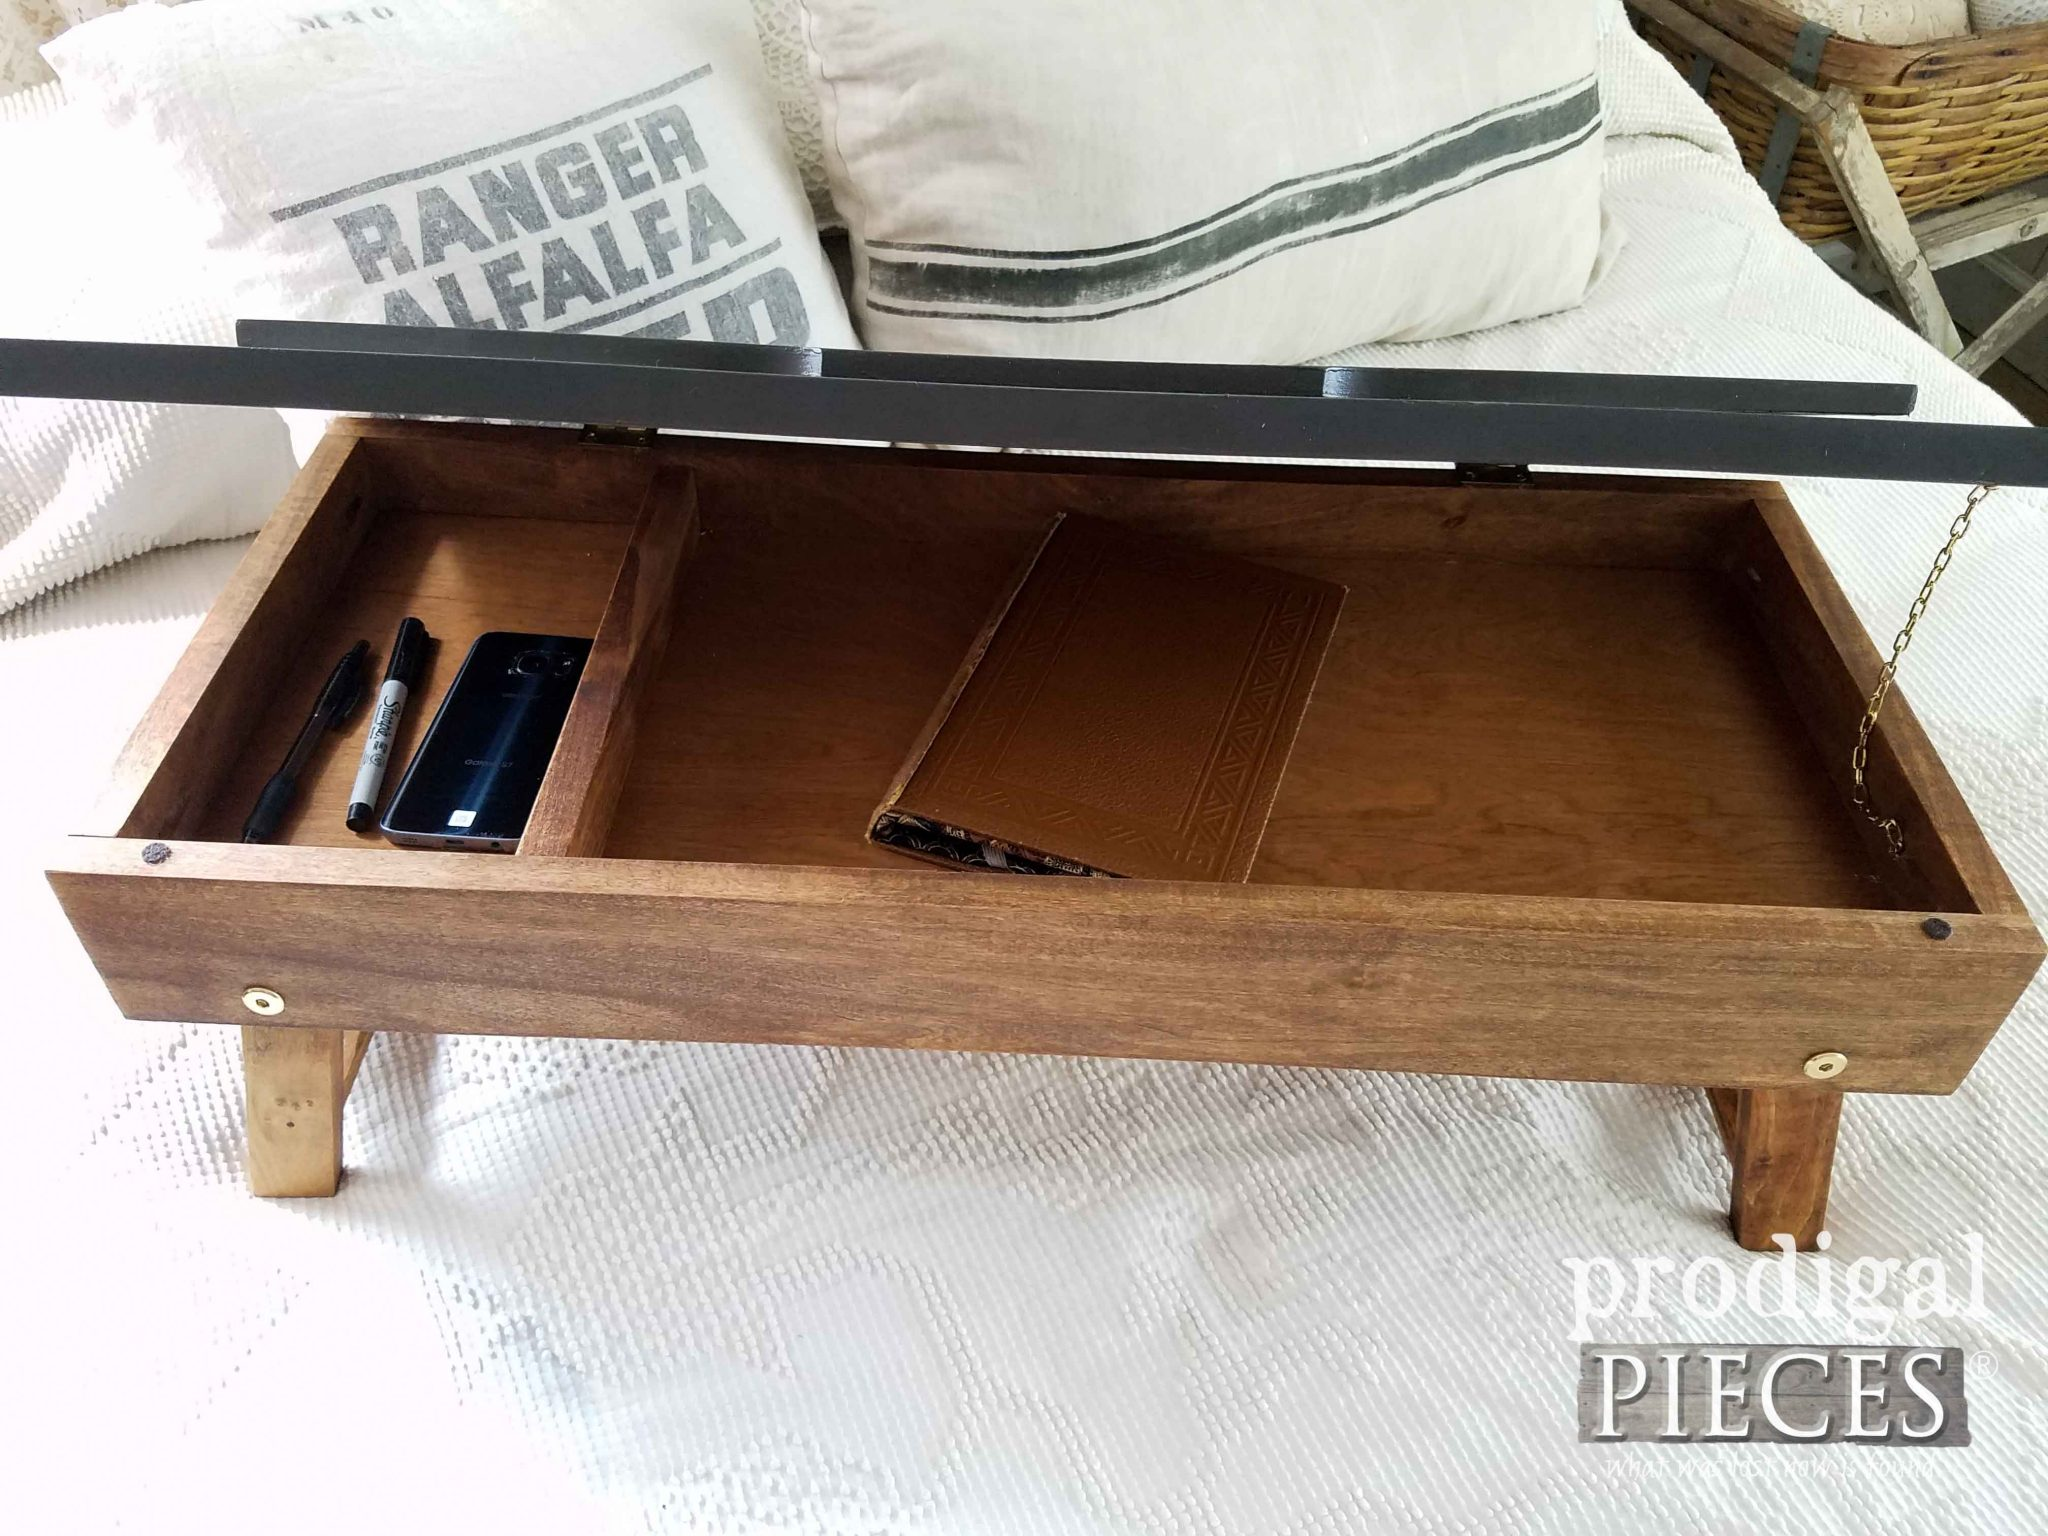 Inside Diy Folding Lap Desk From Upcycled Materials By Prodigal Pieces Prodigalpieces